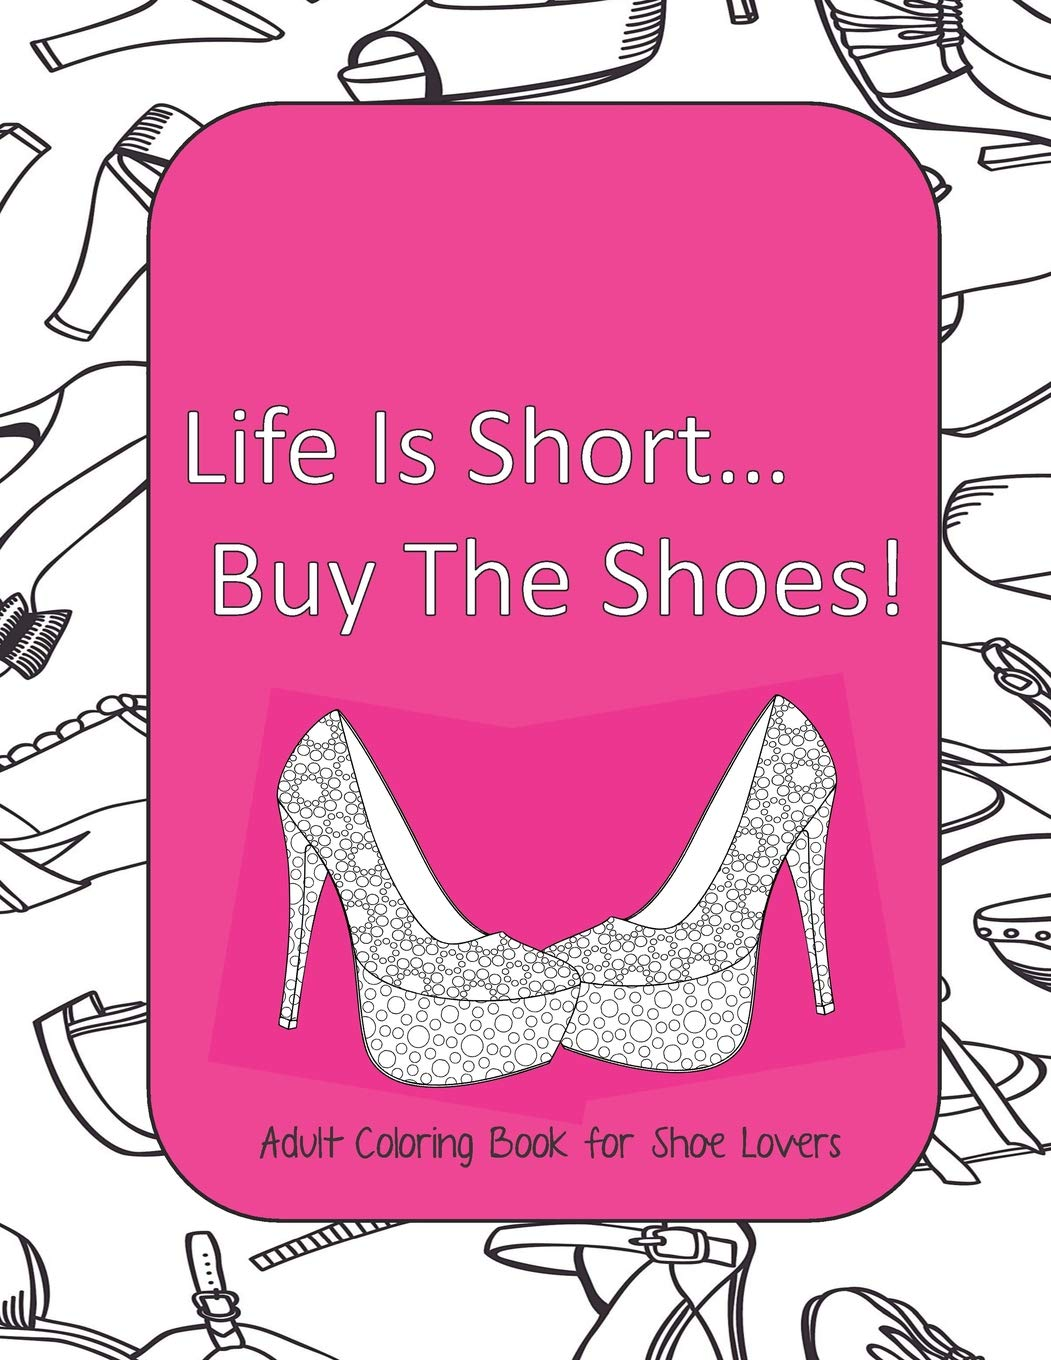 Life Is Short Buy The Shoes Adult Coloring Book For Shoe Lovers Adult Coloring Pages For Shoe Lovers Kids Coloring Book For Fashionistas Fashion Coloring Book Plan Color And 9781070518589 Amazon Com Books